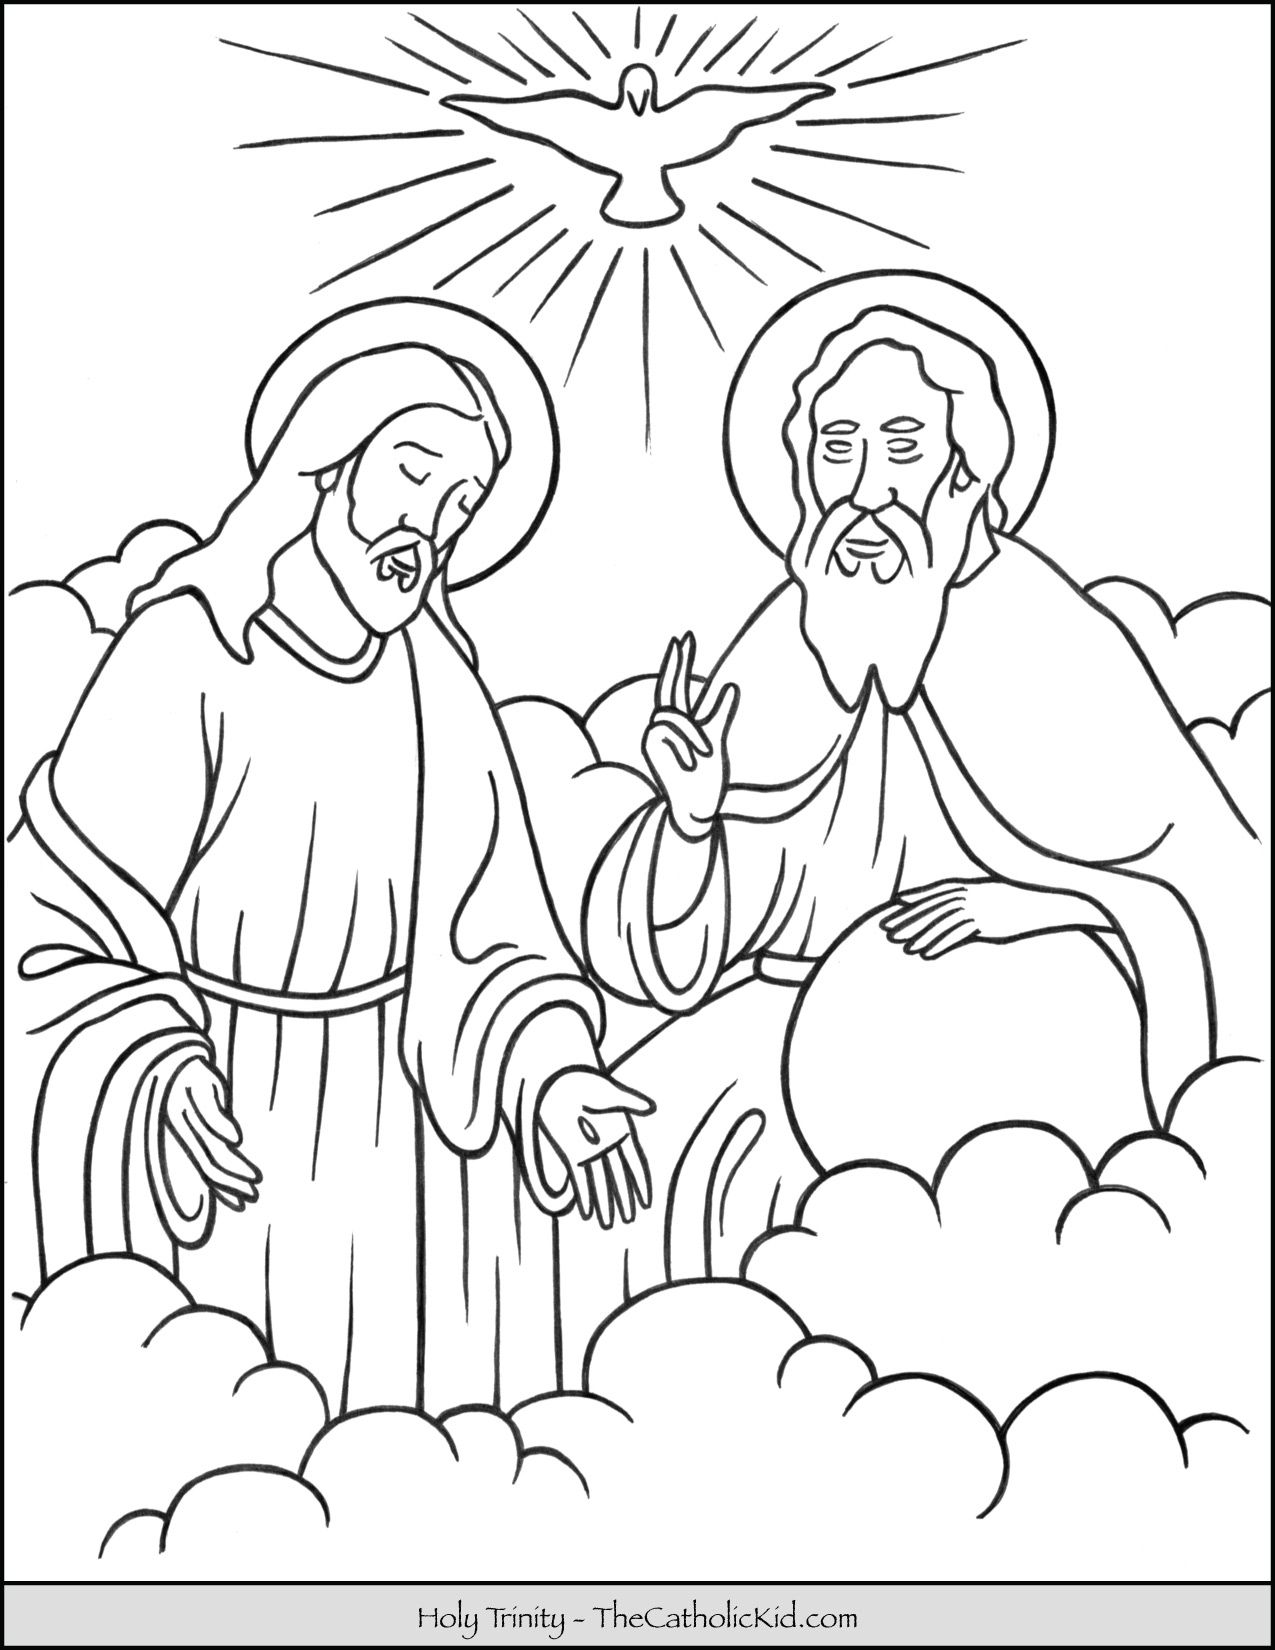 Holy Trinity Coloring Page Jesus Coloring Pages Catholic Coloring Sunday School Coloring Pages